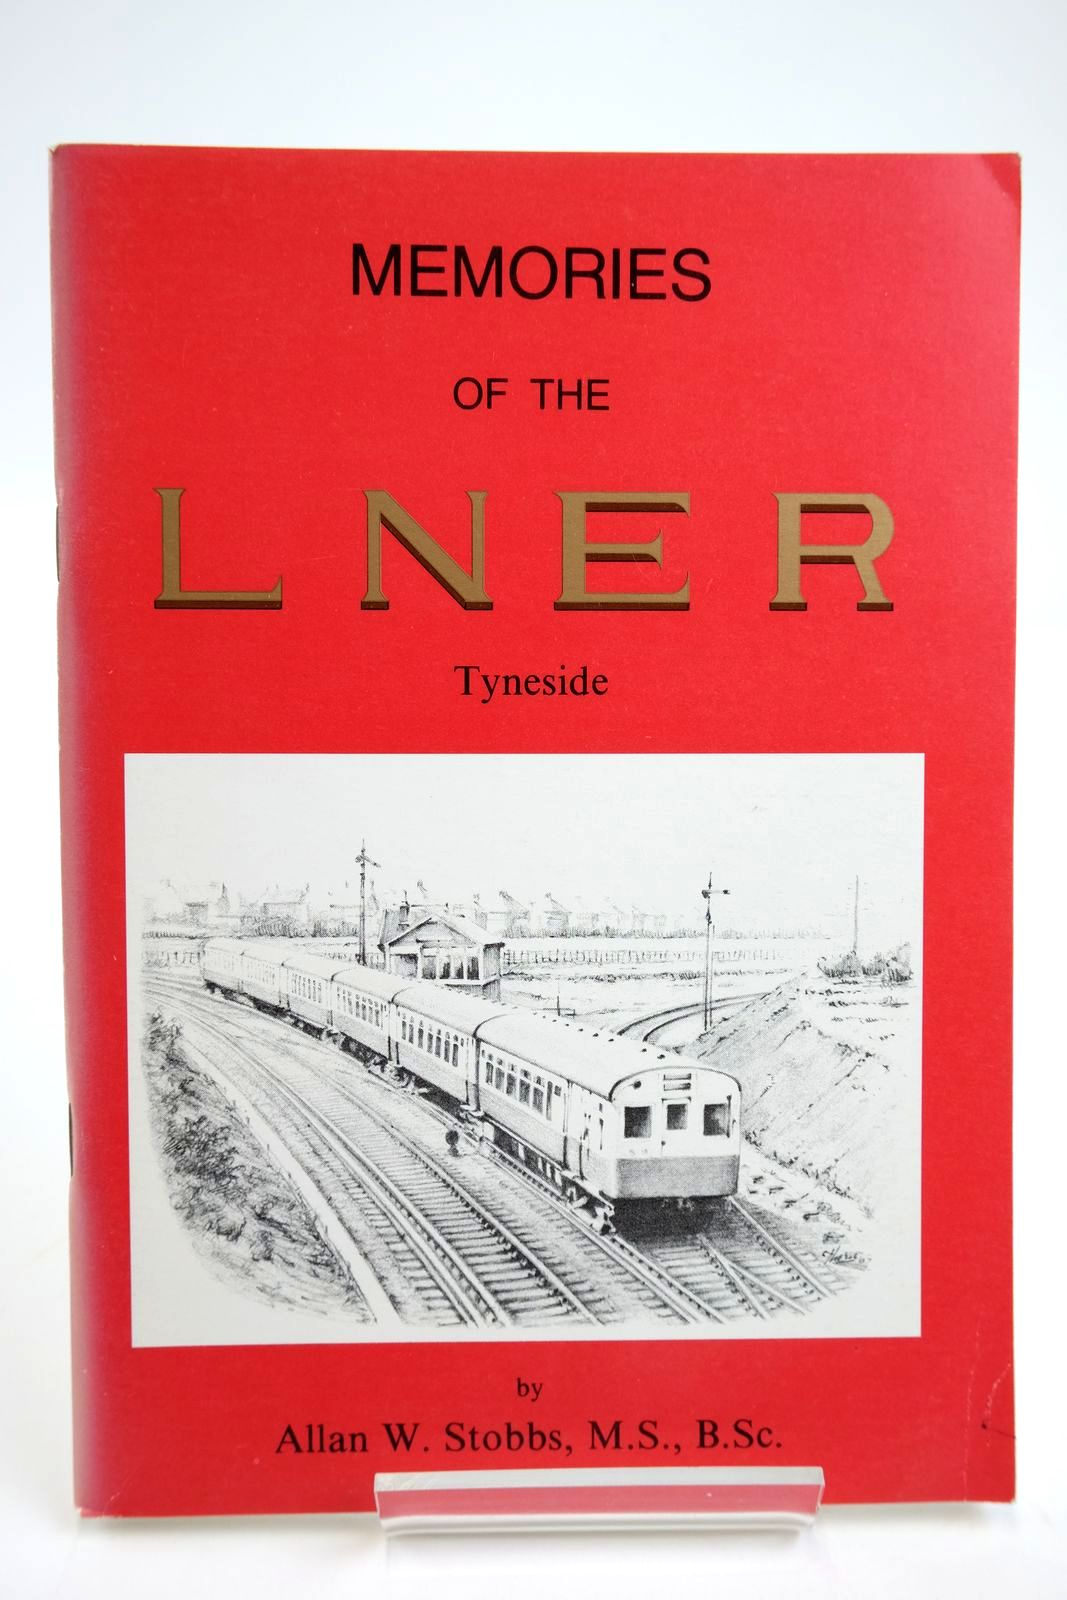 Photo of MEMORIES OF THE L.N.E.R. TYNESIDE- Stock Number: 2133723